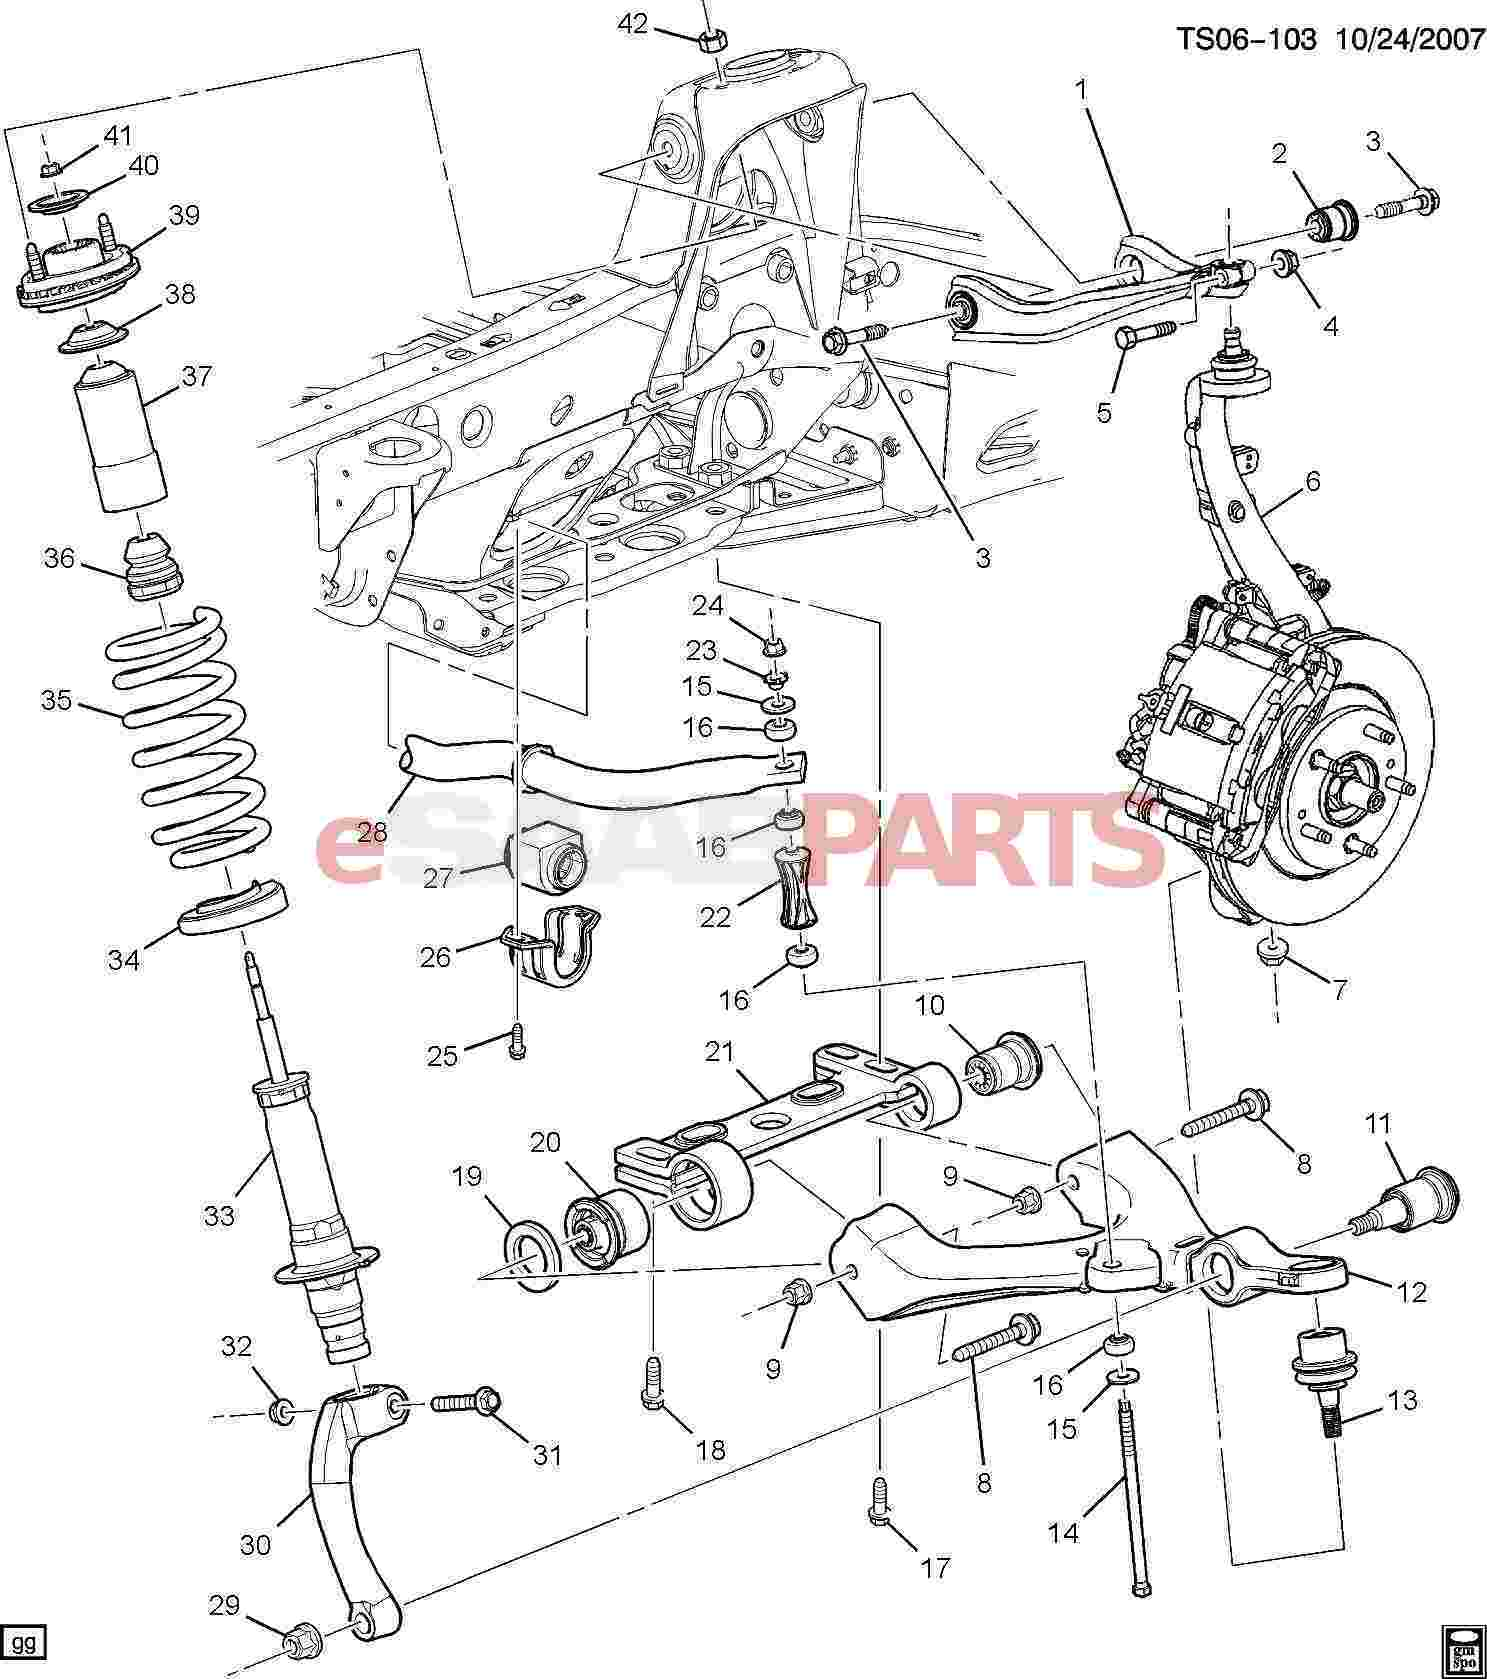 2005 Saab 9 3 Suspension Diagram additionally 6f0p8 Chrysler Pacifica 2005 Chrysler Pacifica Climate Control Panel further Holden  modore 3 8 2000 Specs And Images together with 2006 Jeep Wrangler Tcm Fuse Box Diagram additionally Gmc Sierra 1990 Gmc Sierra Pictorial Diagram Of Heater Core Removal. on 2005 saturn relay fuse box